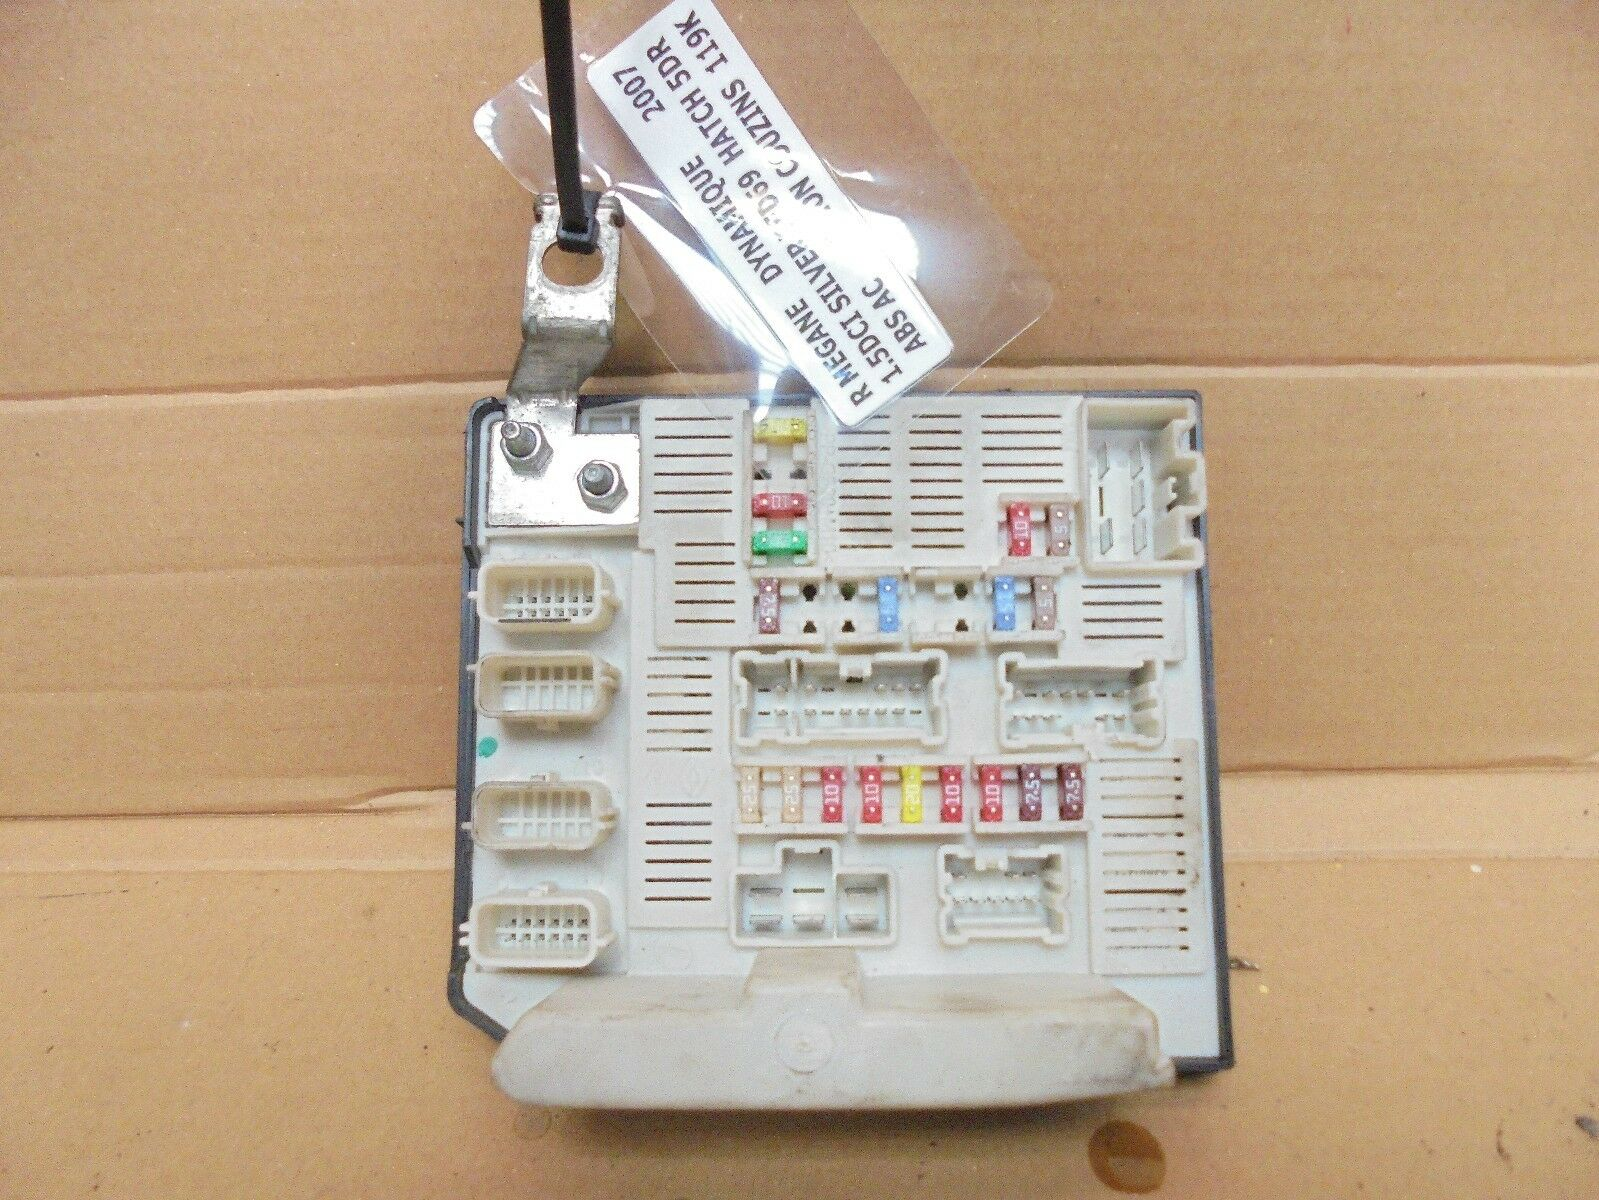 Renault Megane 2007 15 Dci External Engine Bay Fuse Box Fusebox 8200481866c 1 Of 1only Available